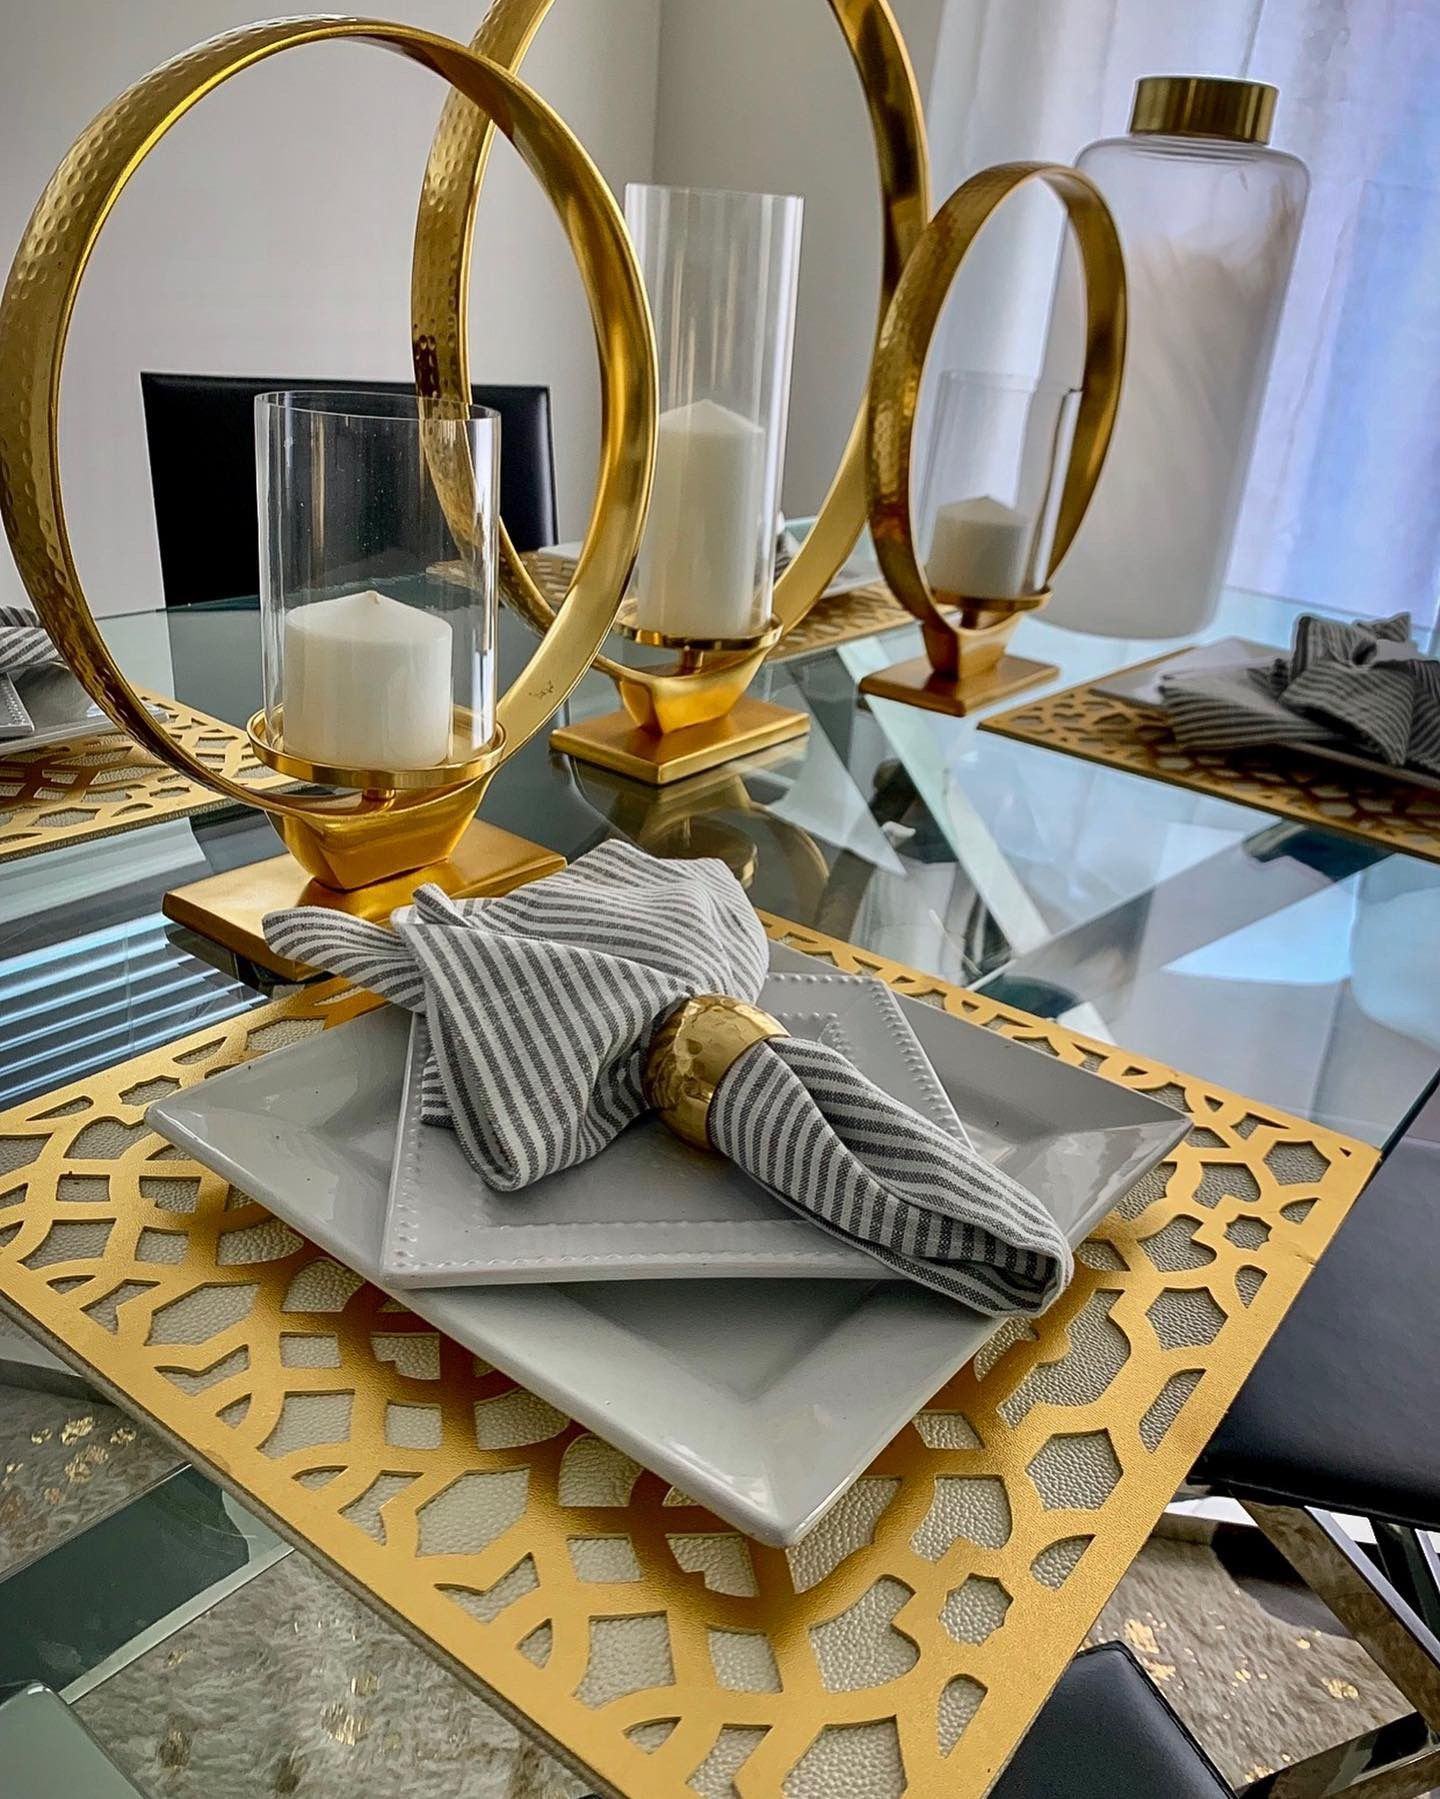 Glam Gold Decor Decor Glam Gold Dining Room Table Decor White Dining Room Decor Gold Dining Room Table